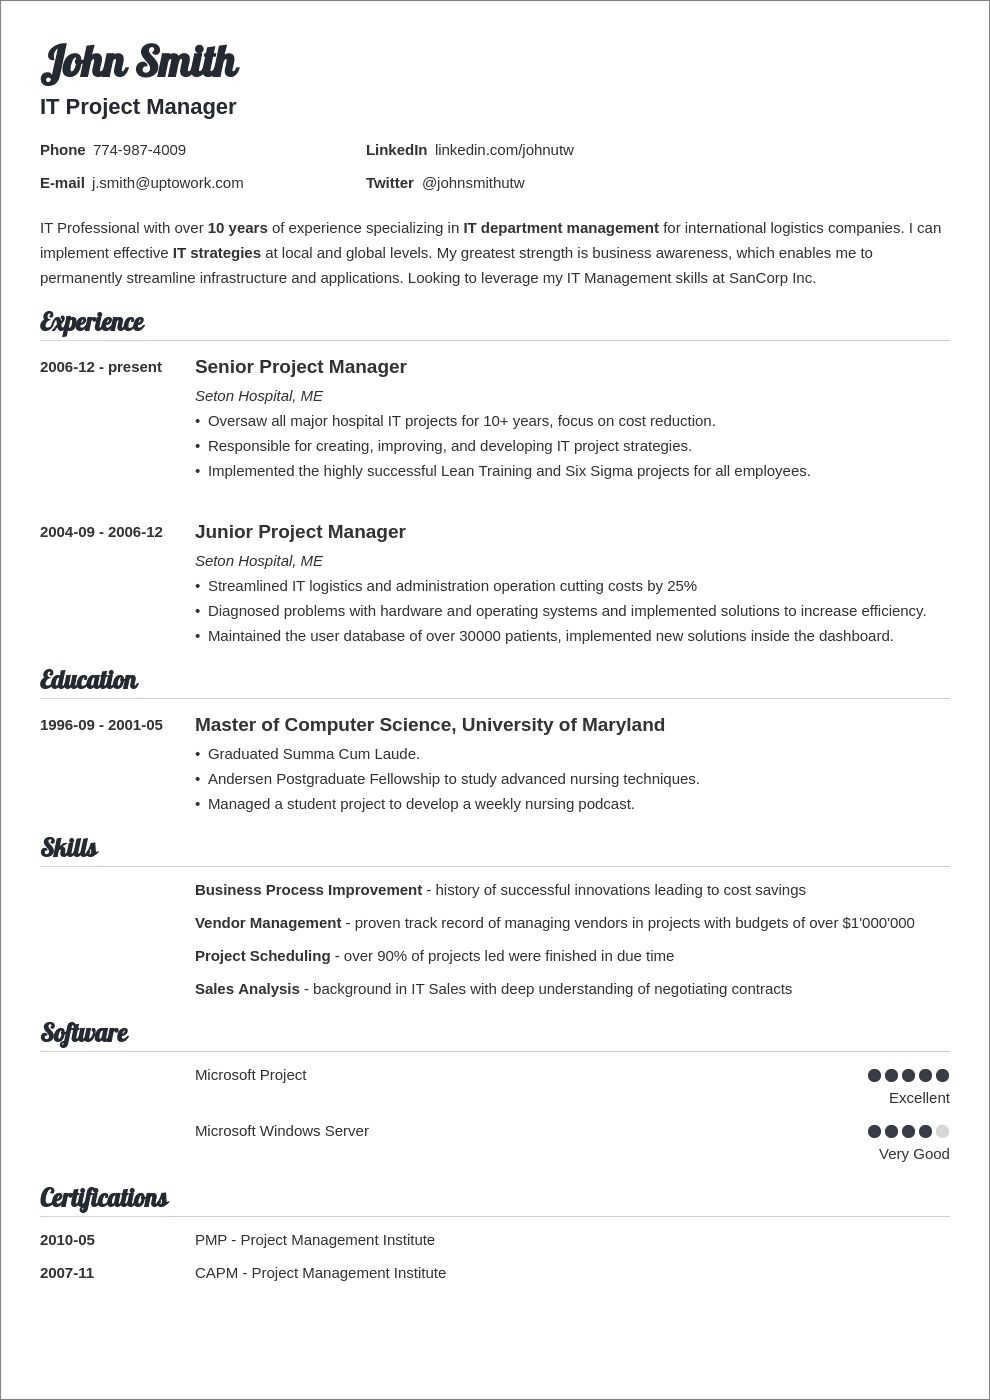 007 Archaicawful Basic Resume Template Word Example  Free Download 2020Full